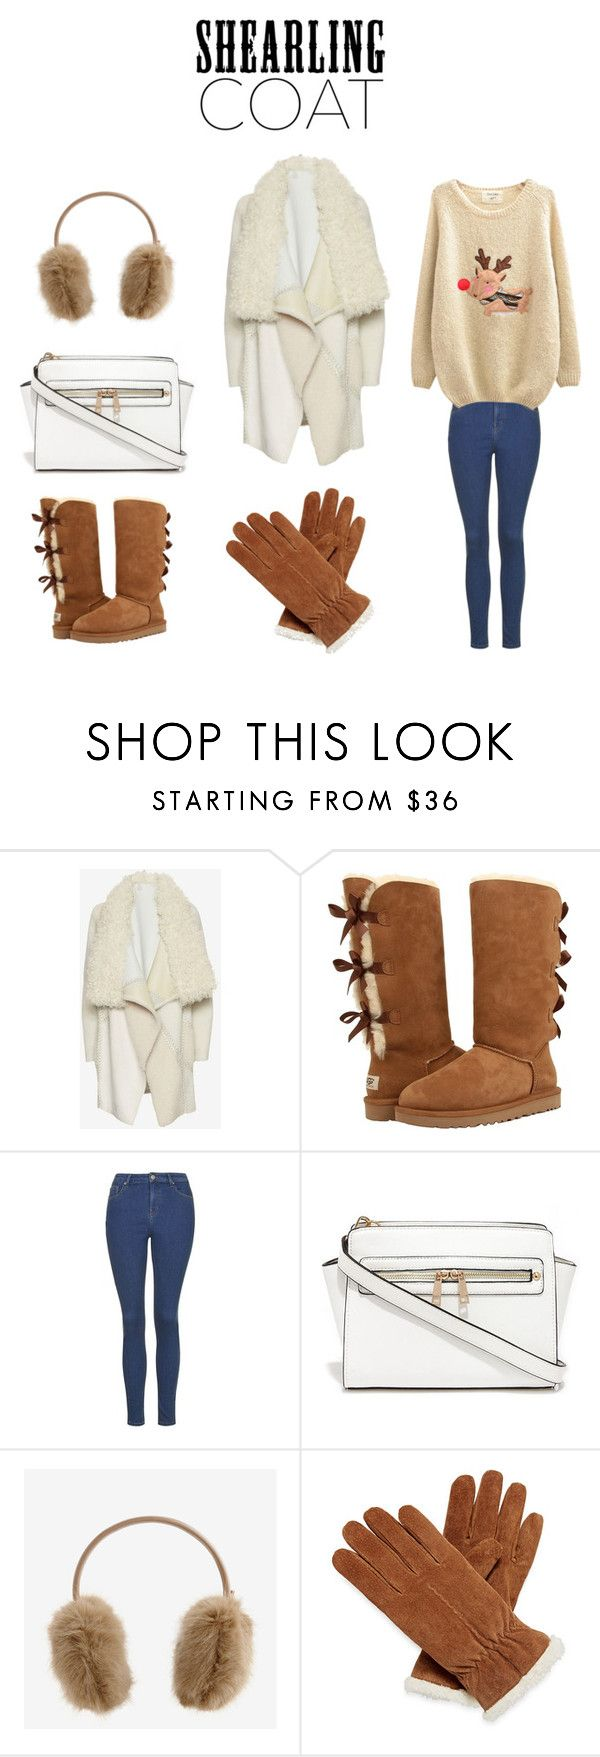 Shearling Coat by adriana-claudia on Polyvore featuring Chicnova Fashion, Yves Salomon, Topshop, UGG Australia, Isotoner, Ted Baker and shearlingcoat